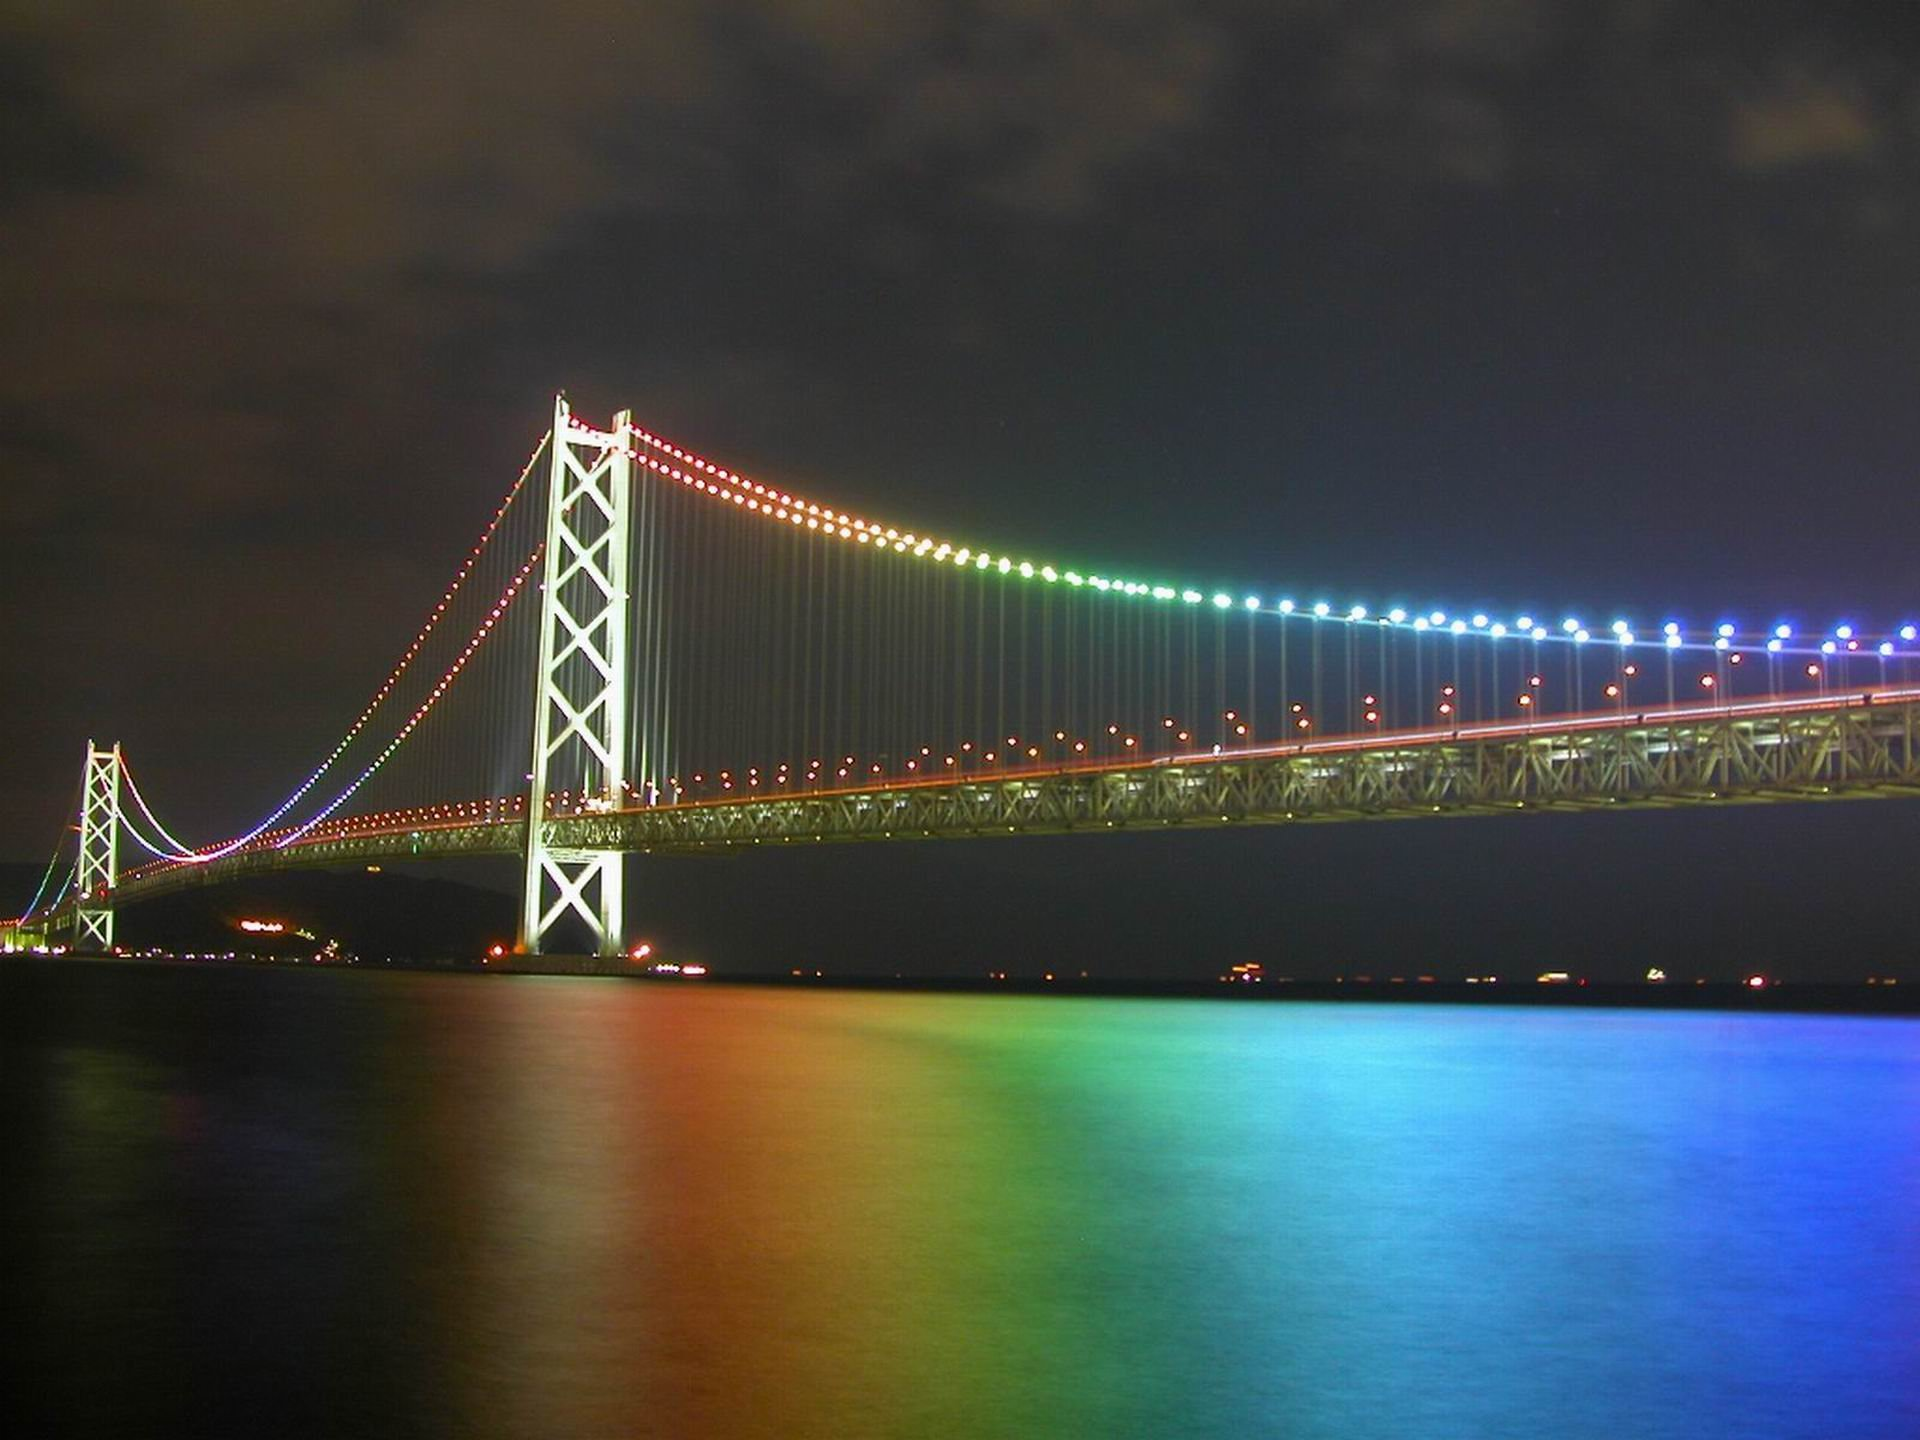 7000892-akashi-kaikyo-bridge-japan